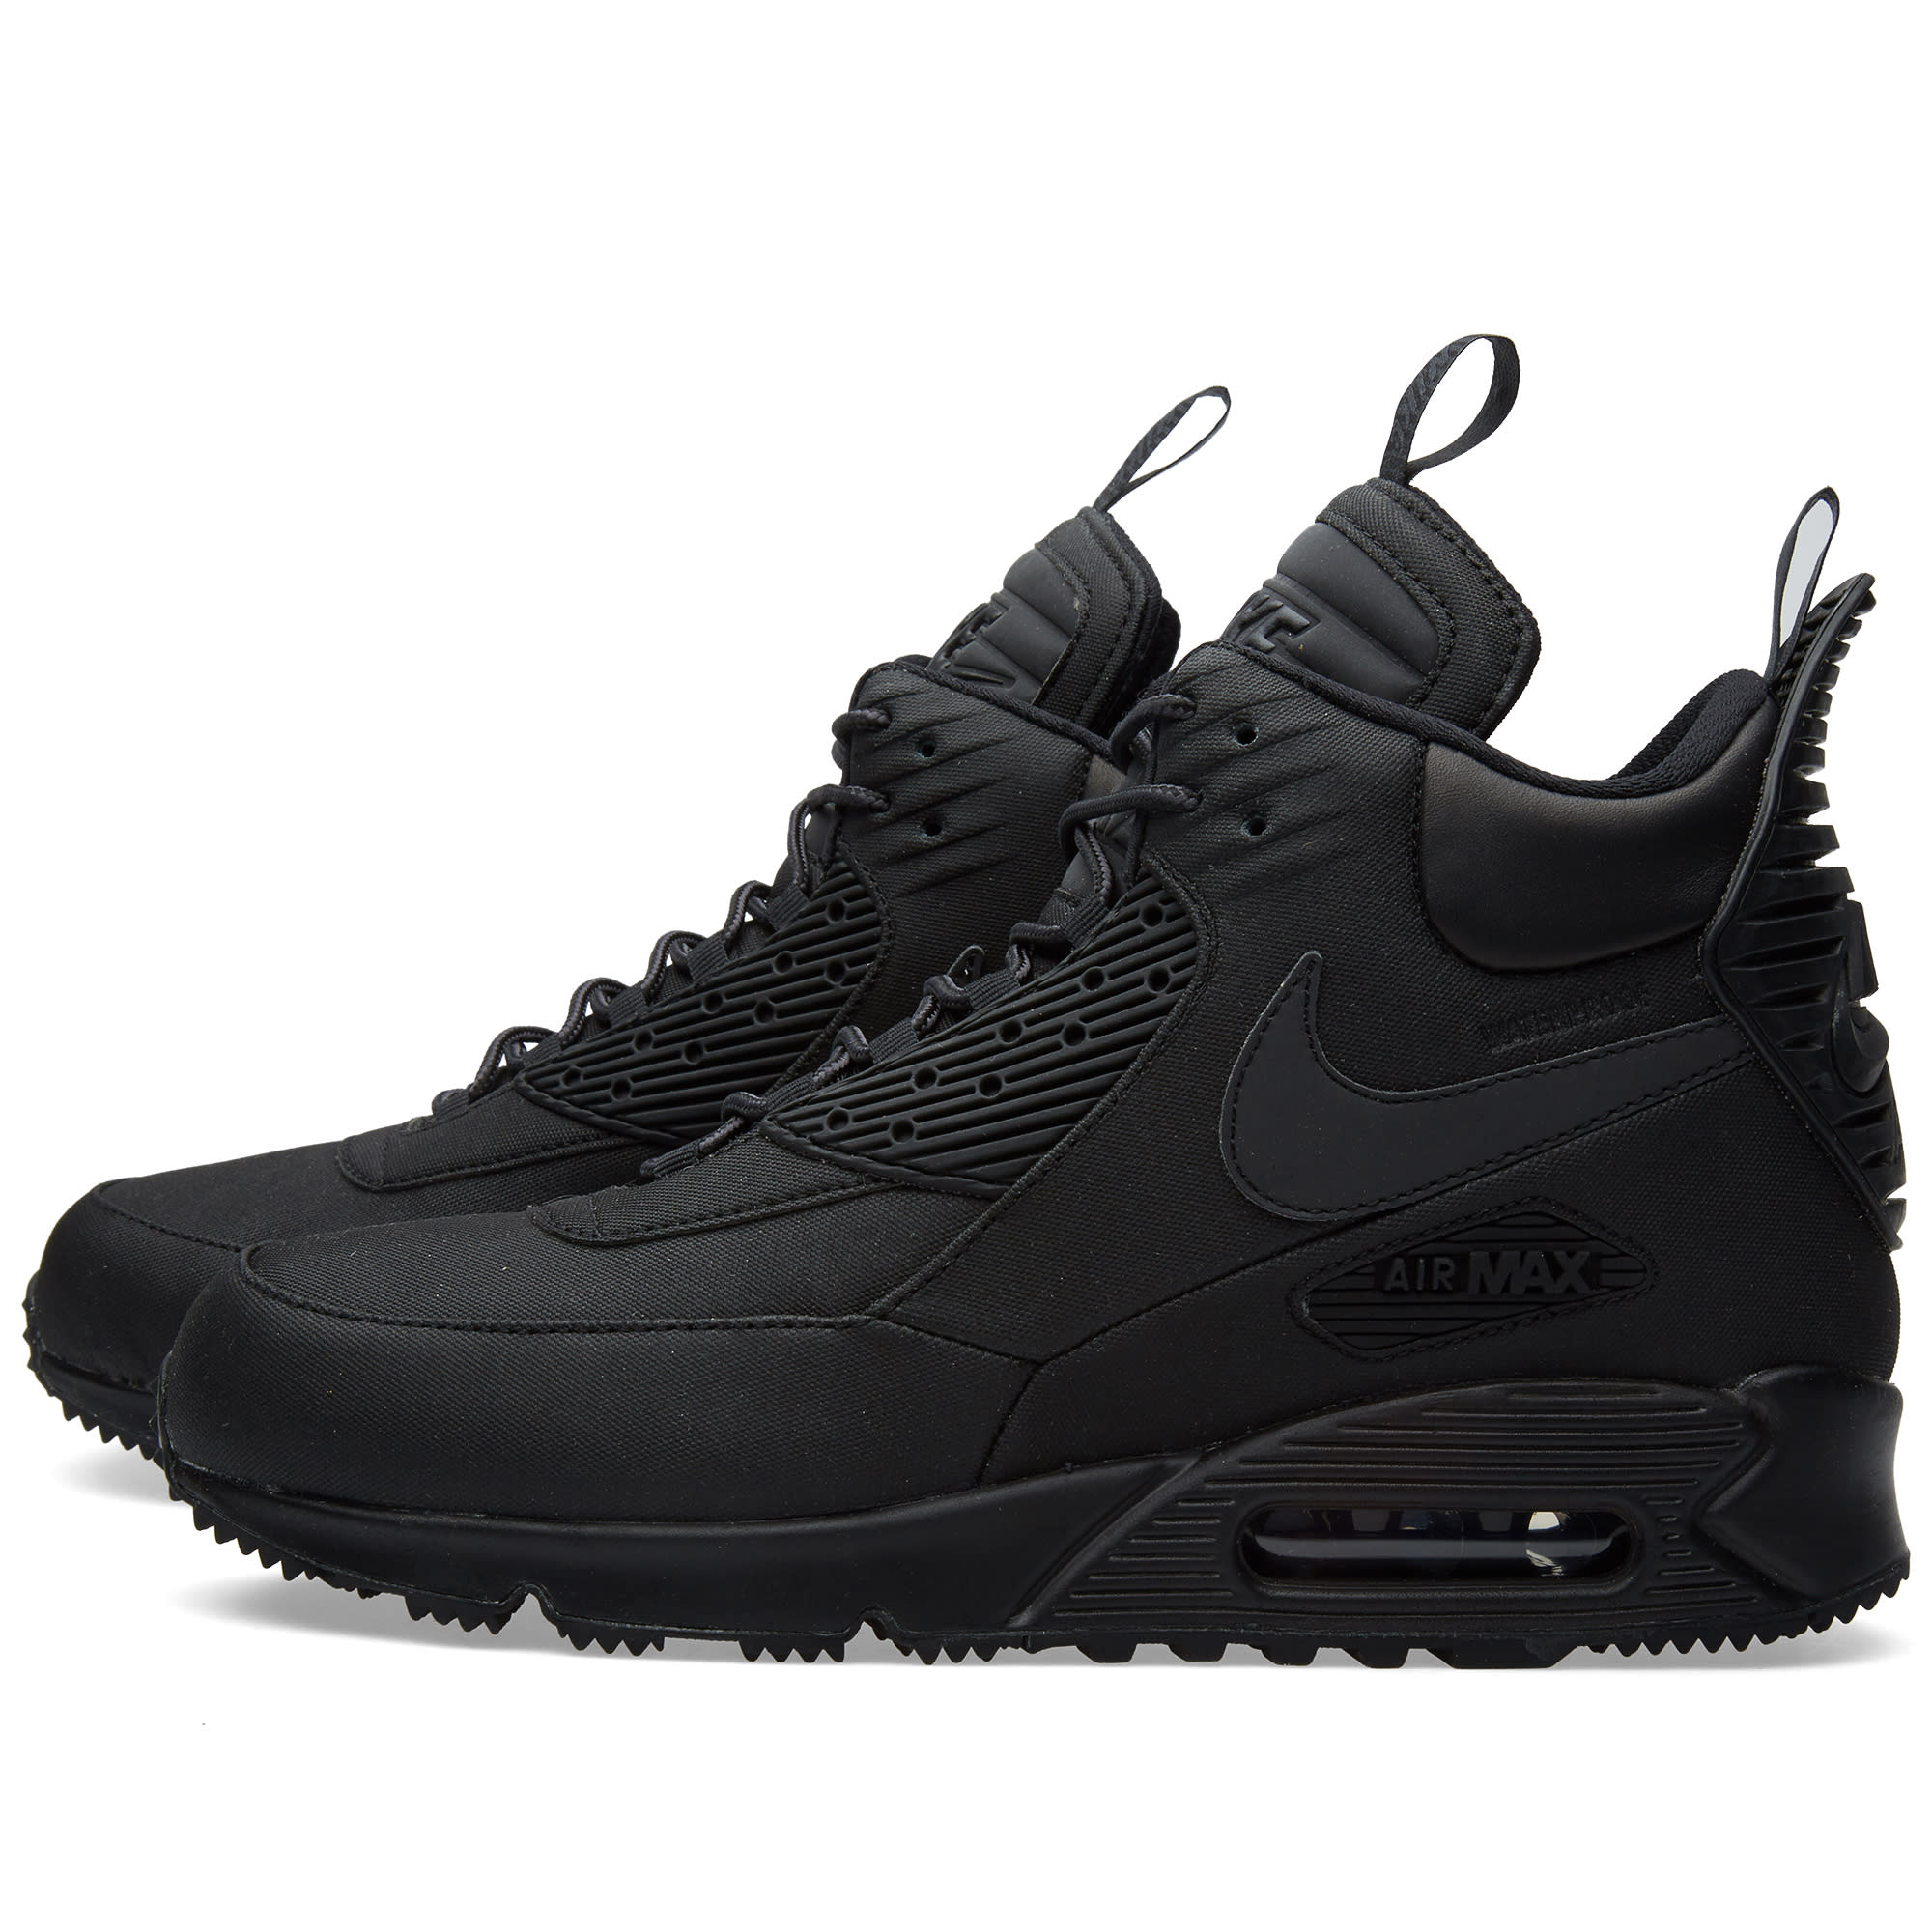 size 40 6ab7a 9c441 Nike Air Max 90 Sneakerboot Winter Black   END.